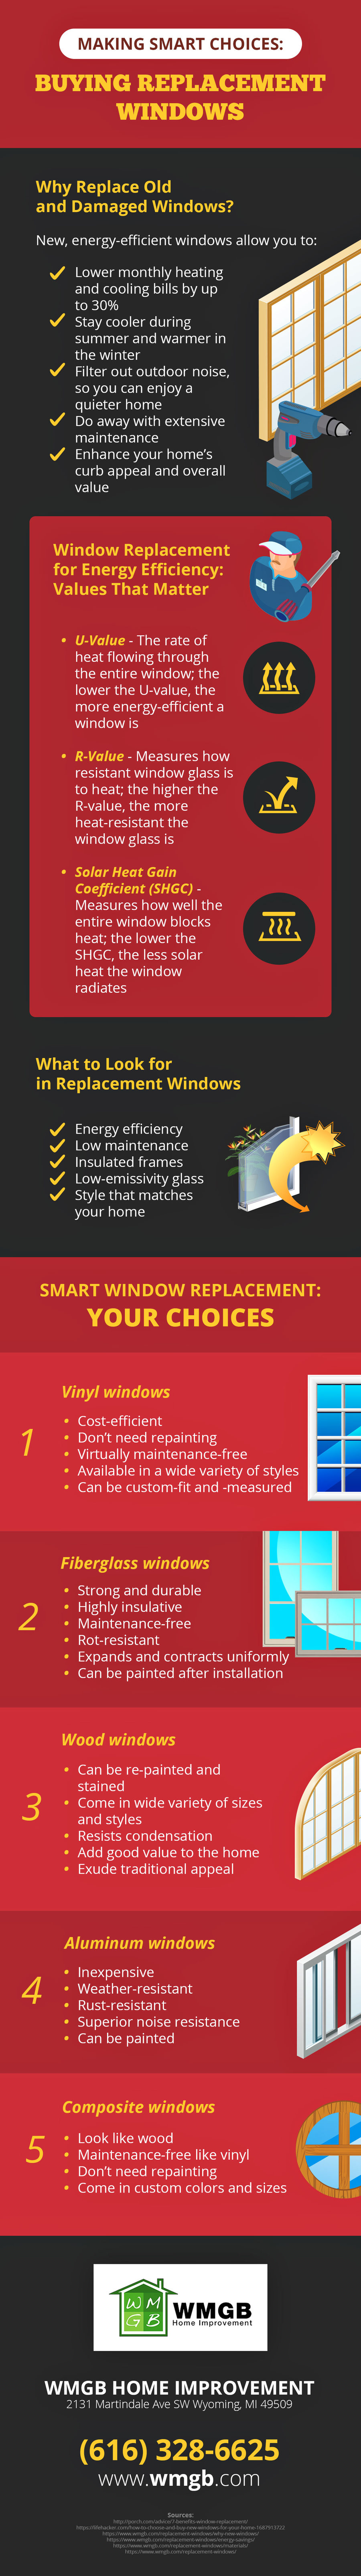 Buying Replacement Windows